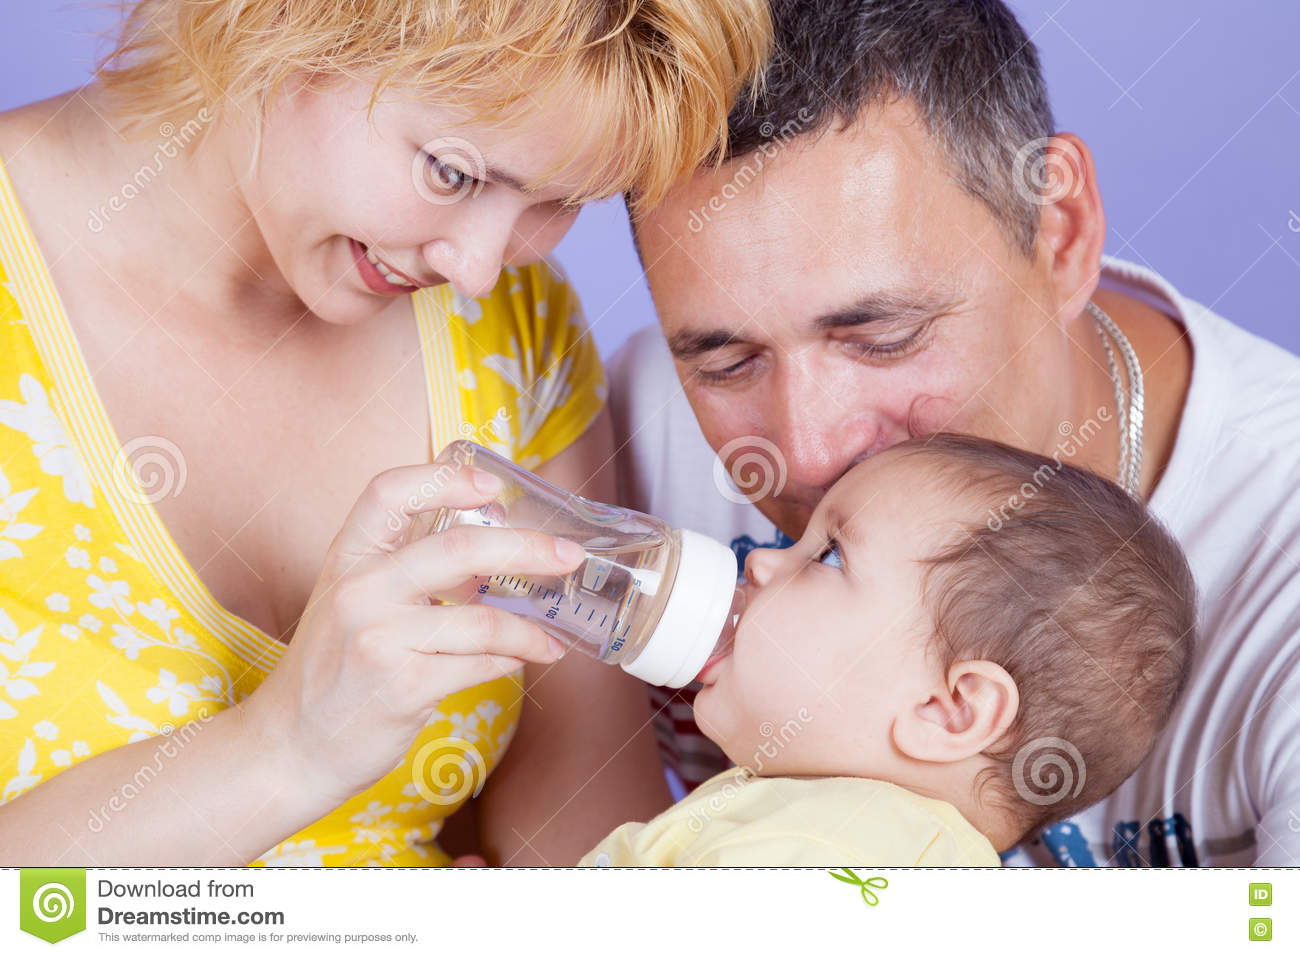 Parents fed by baby bottle